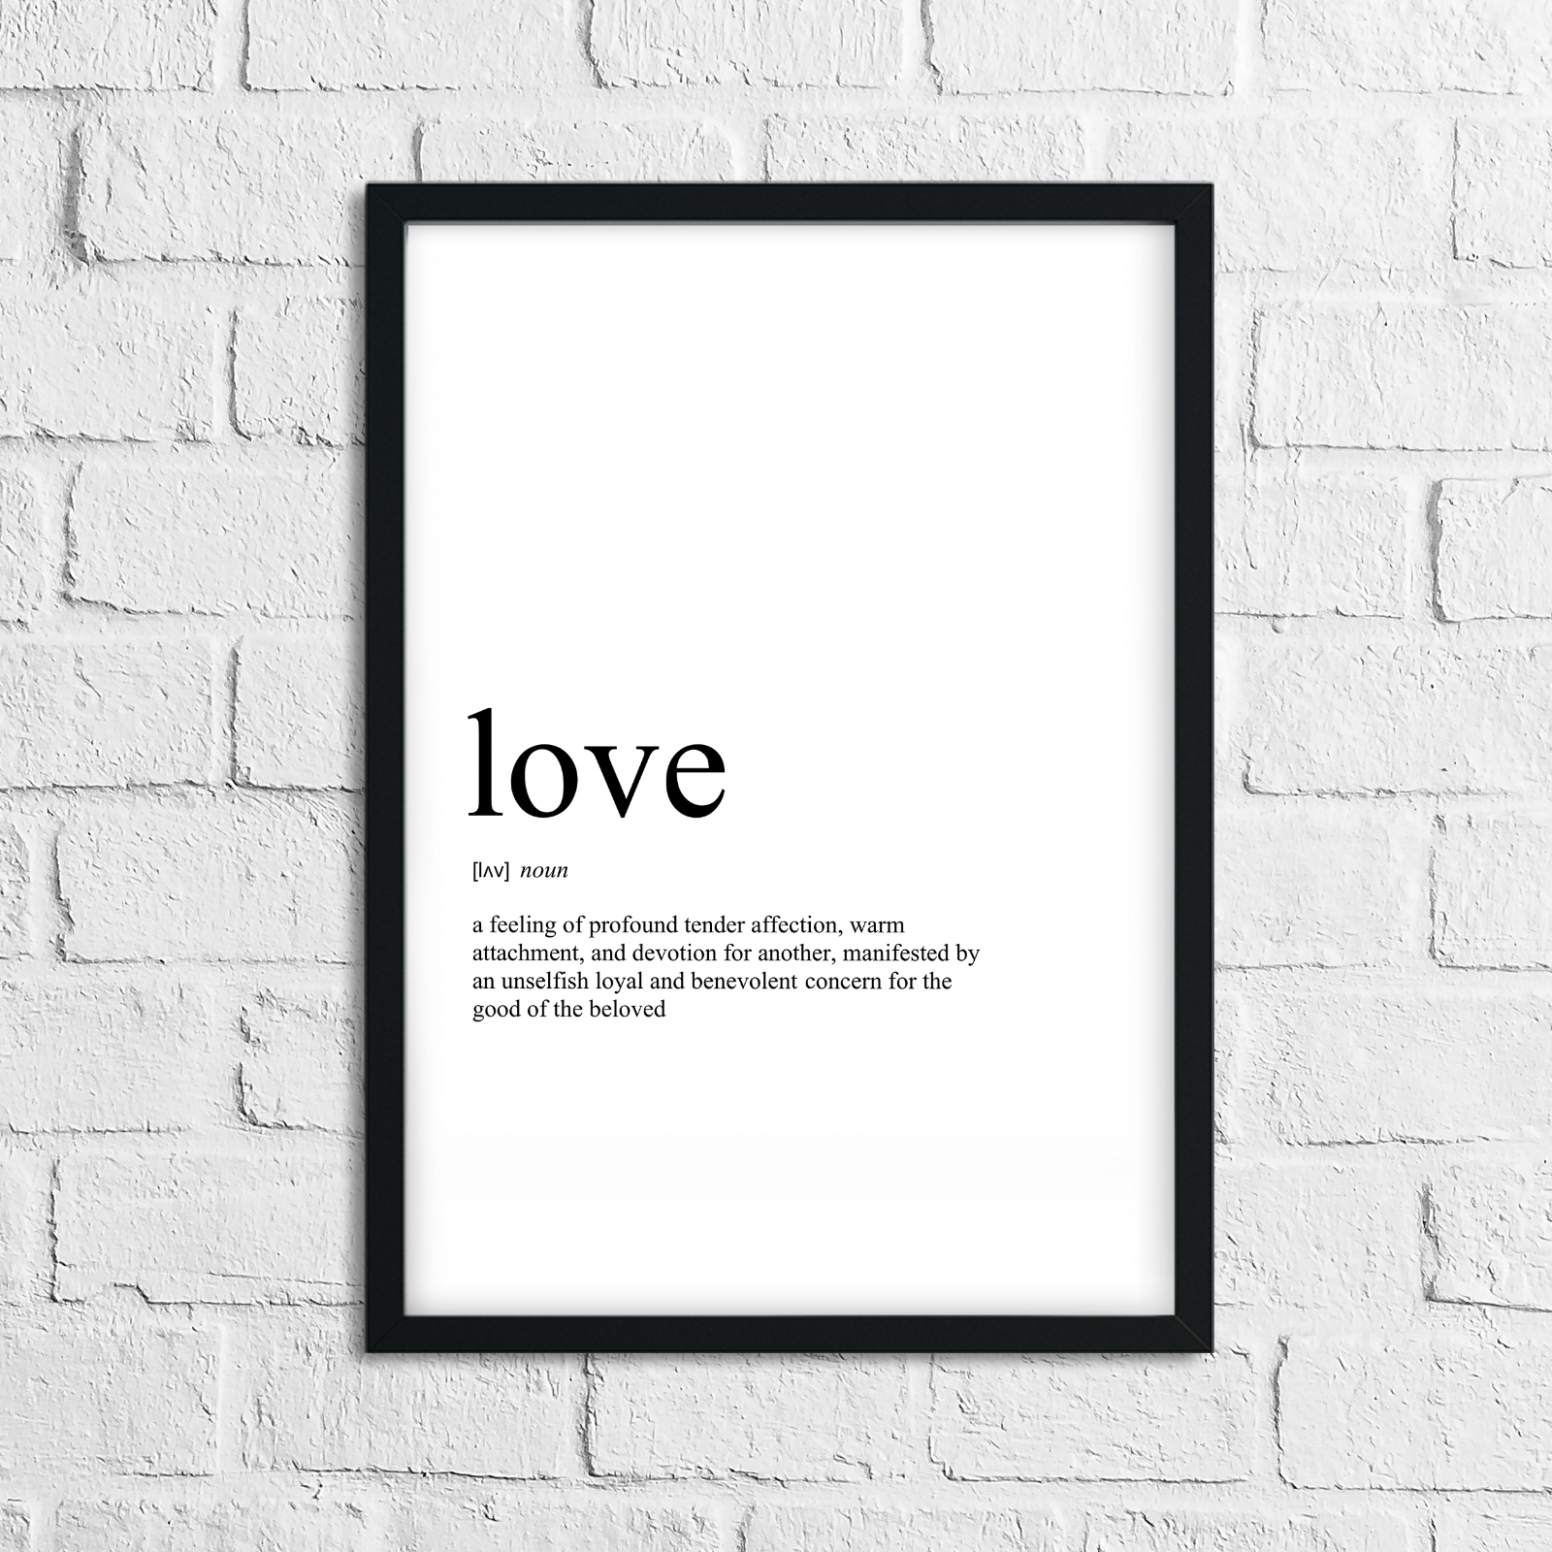 Details about Funny Love Meaning Print, Definition, Typograpy, Wall Art  Gift, Home Decor - home decor meaning